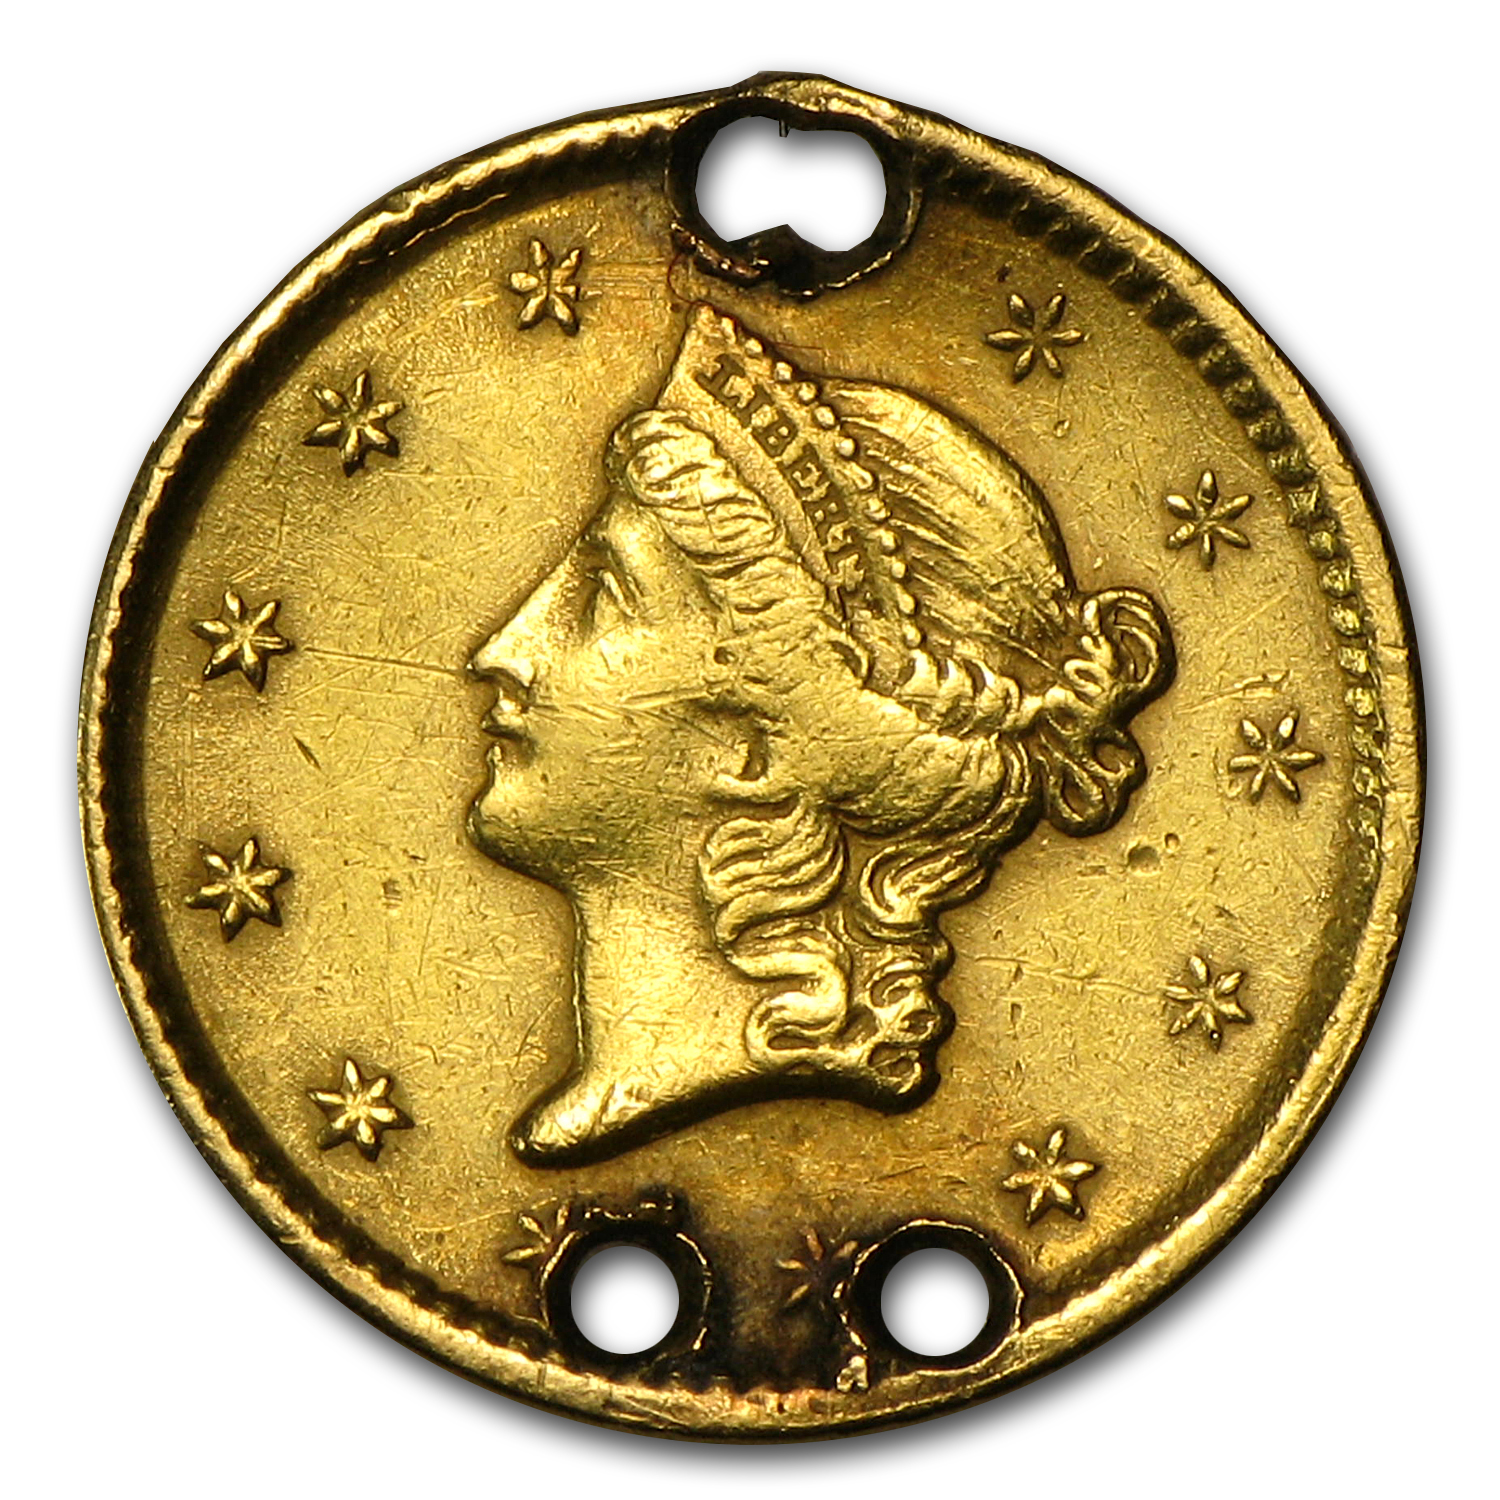 $1.00 Liberty Gold-Type I - No Date Love Token - I G